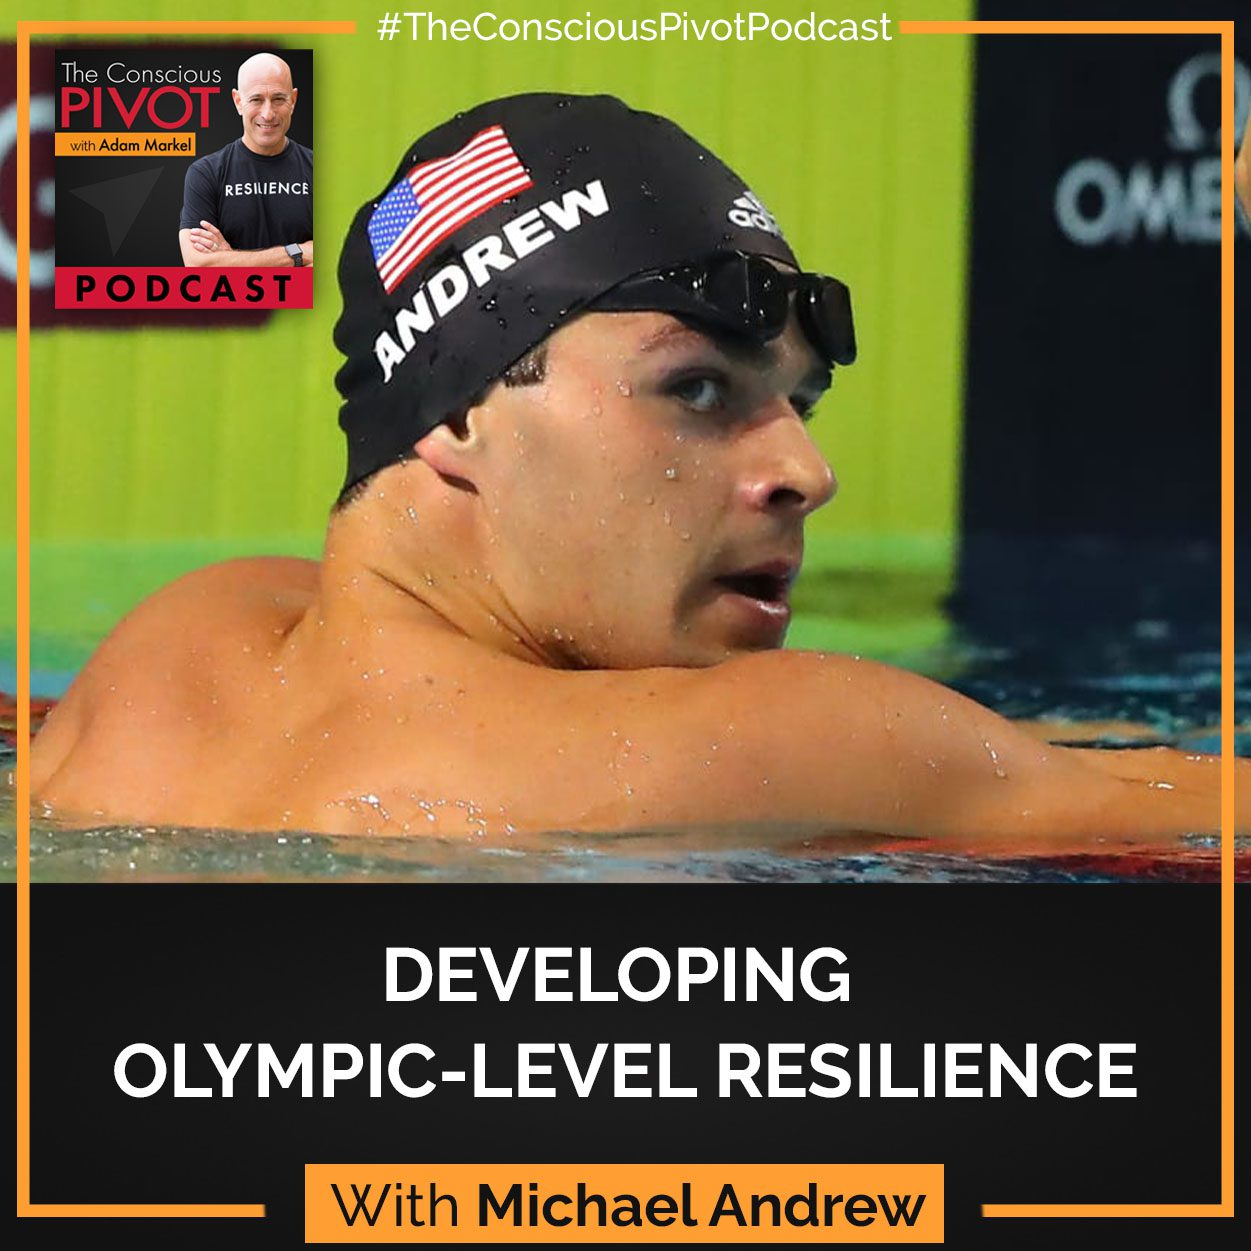 Developing Olympic-Level Resilience with Michael Andrew